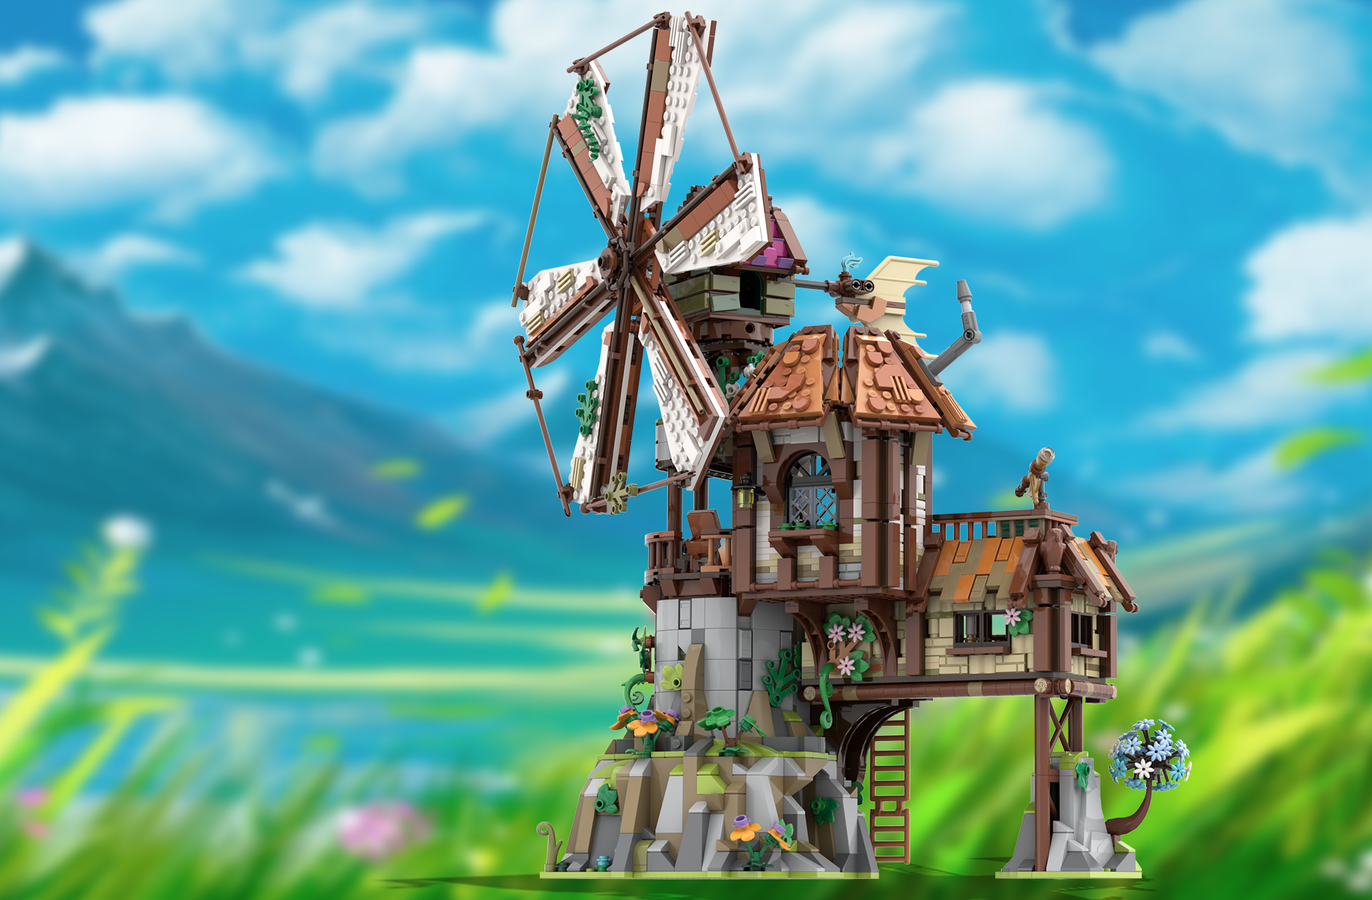 lego-ideas-the-mountain-windmill-hanwasyellowfirst-1 zusammengebaut.com